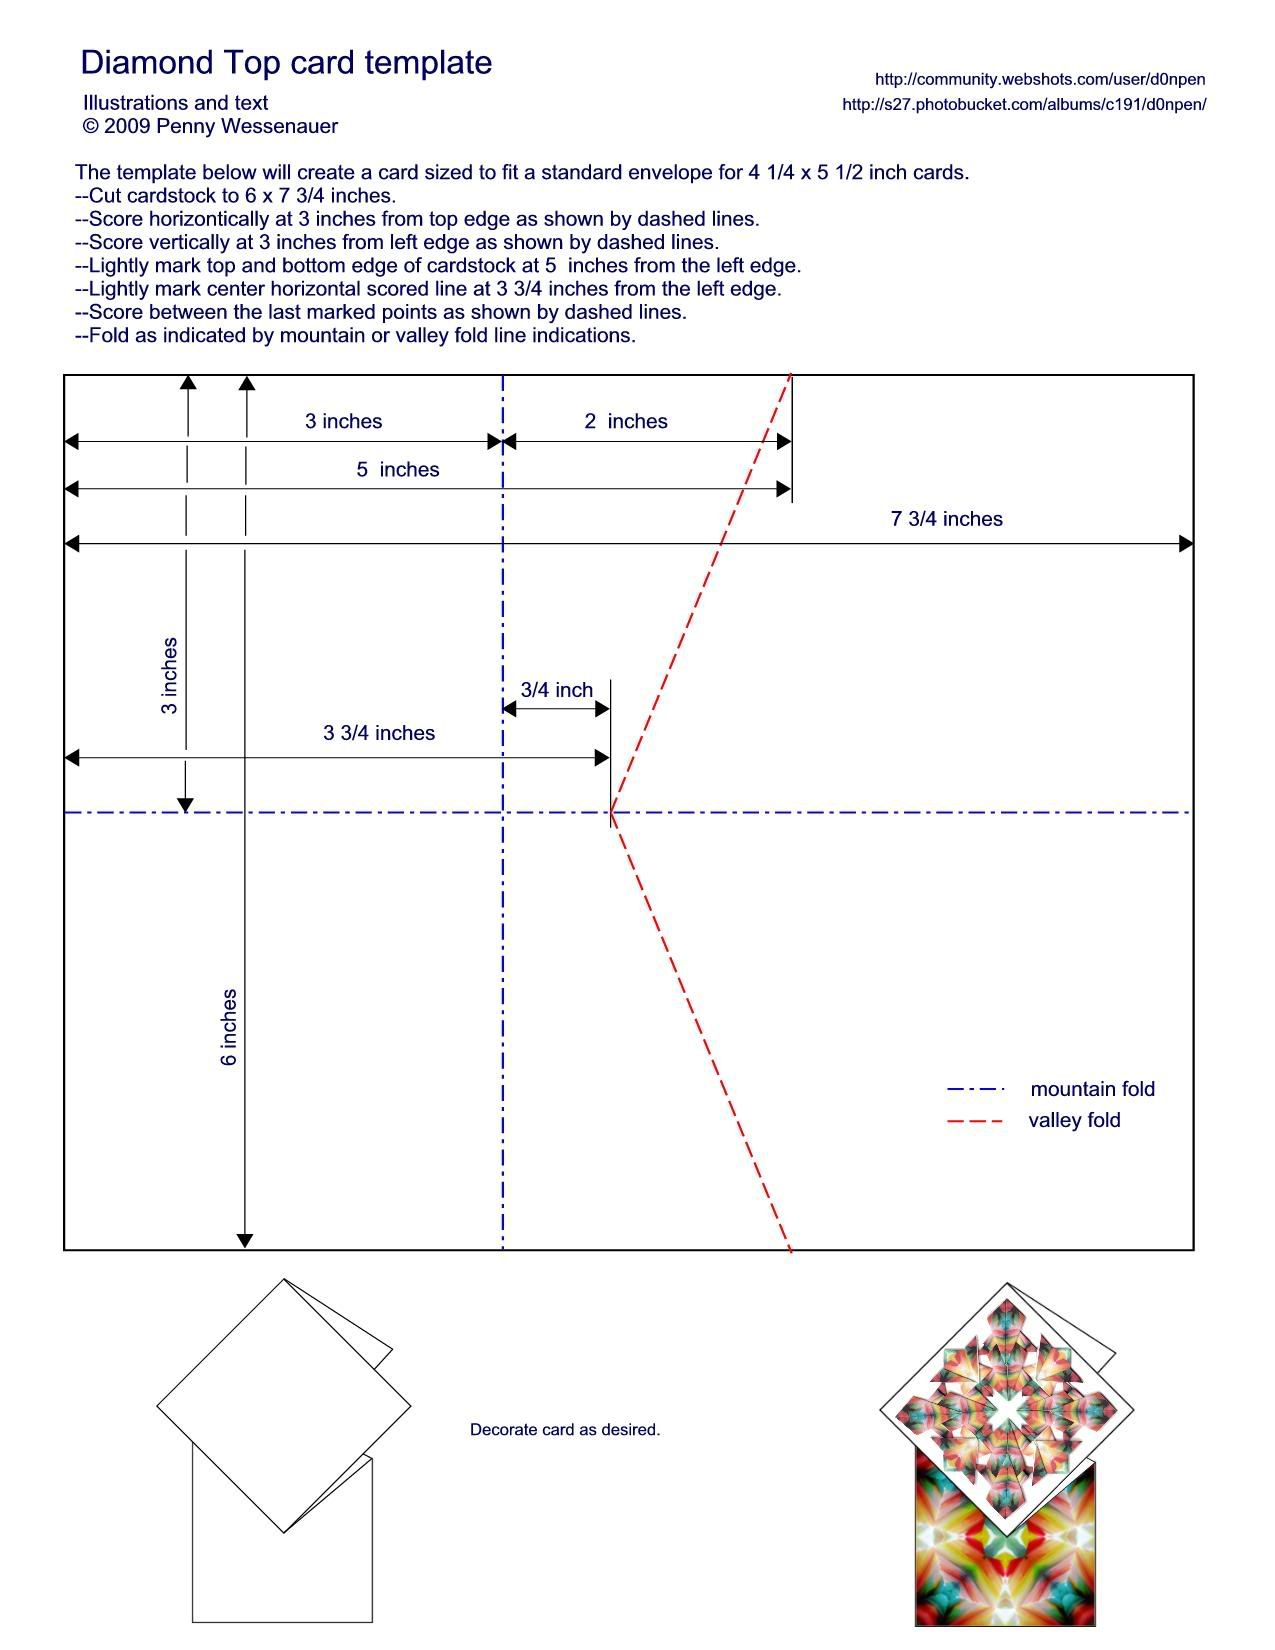 Diamond Topped Card Template To Fit A Standard A2 Envelope 4 25 X5 5